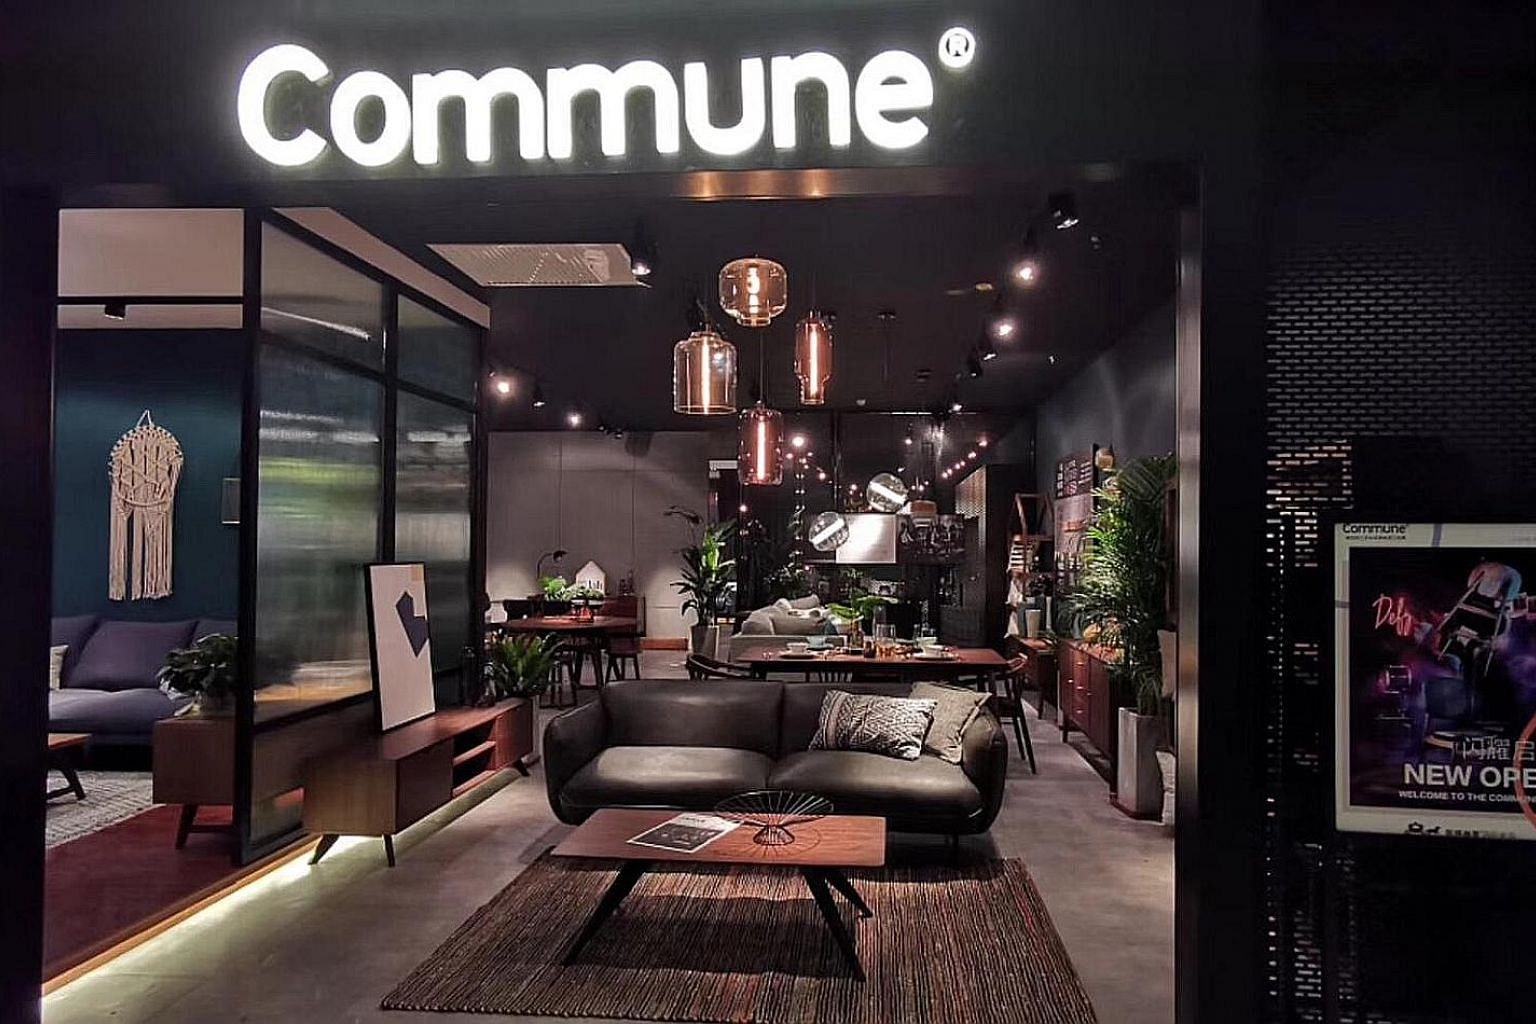 Furniture maker Koda's factories in Senai, Johor, will stay shut till April 14. The firm, which runs a chain of retail concept stores called Commune (above), expects to resume operations on April 15.